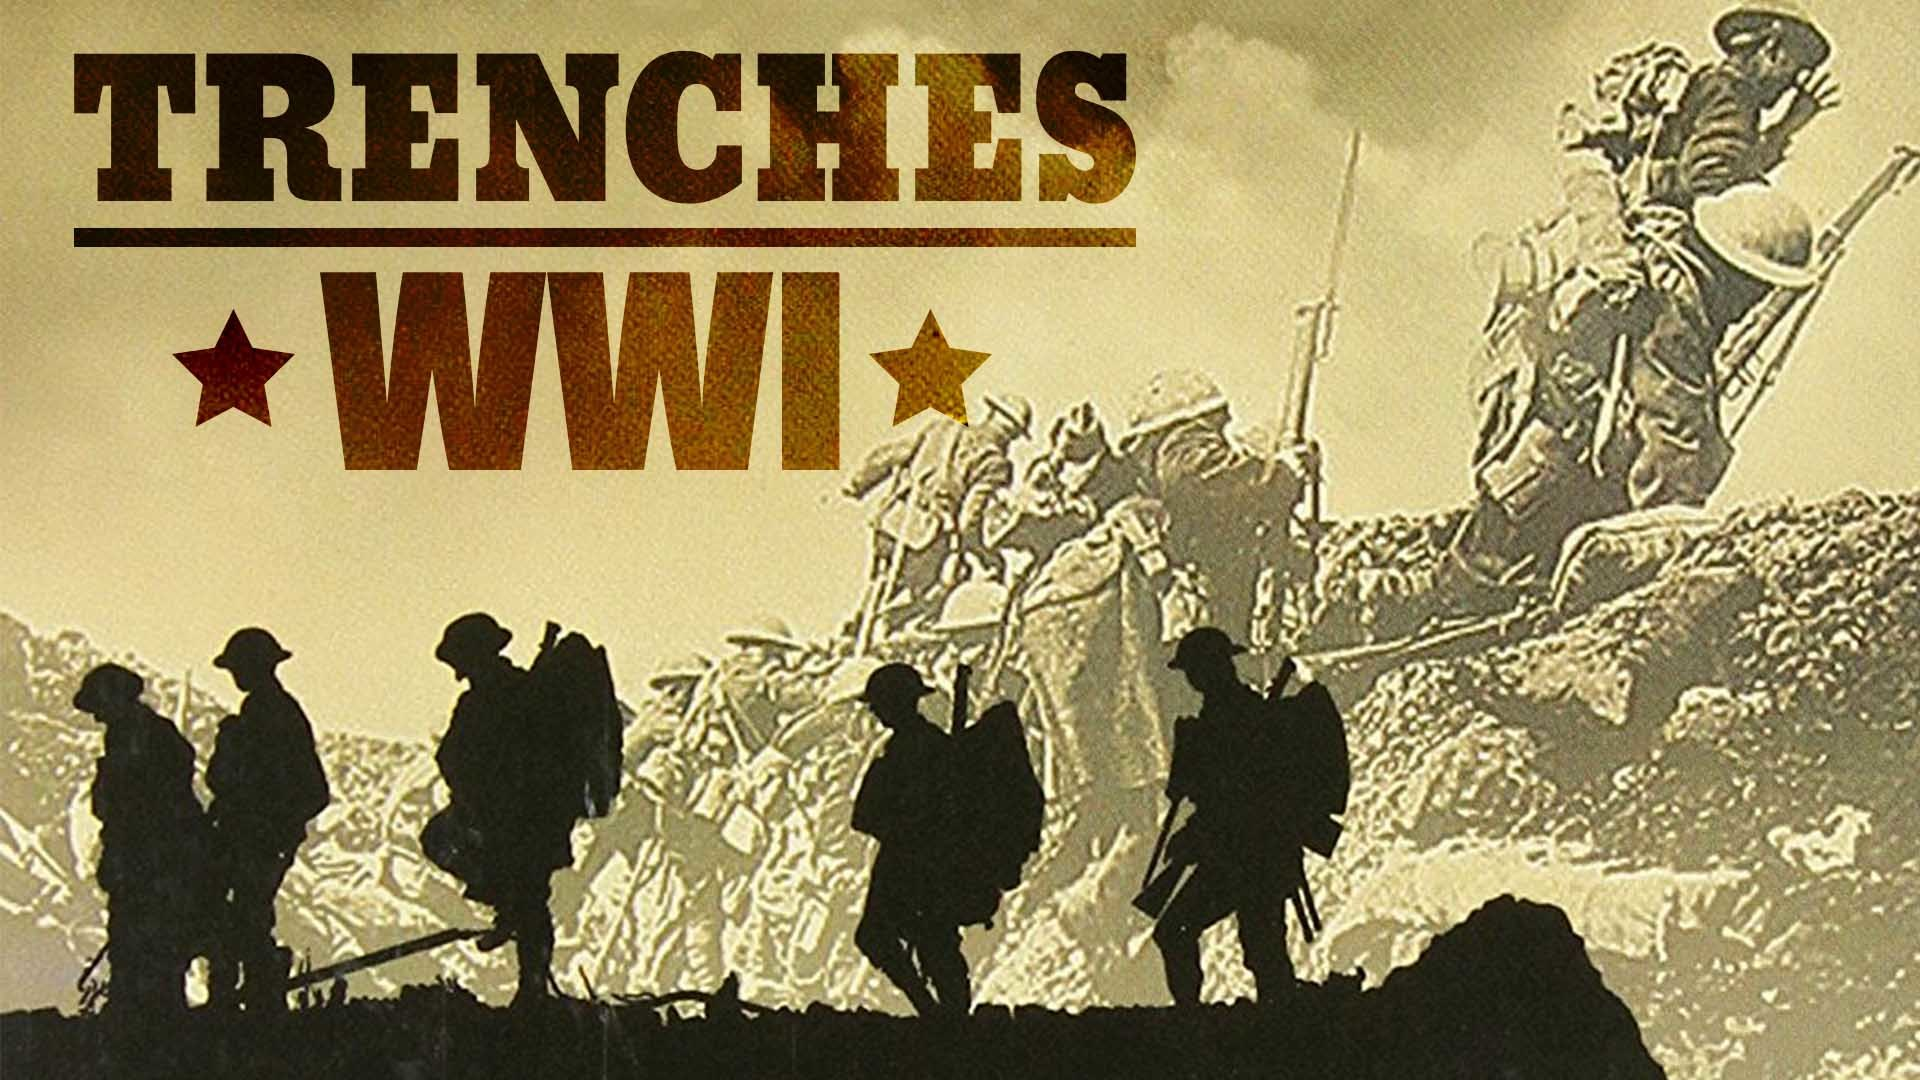 Trenches - World War I (1914-1918)